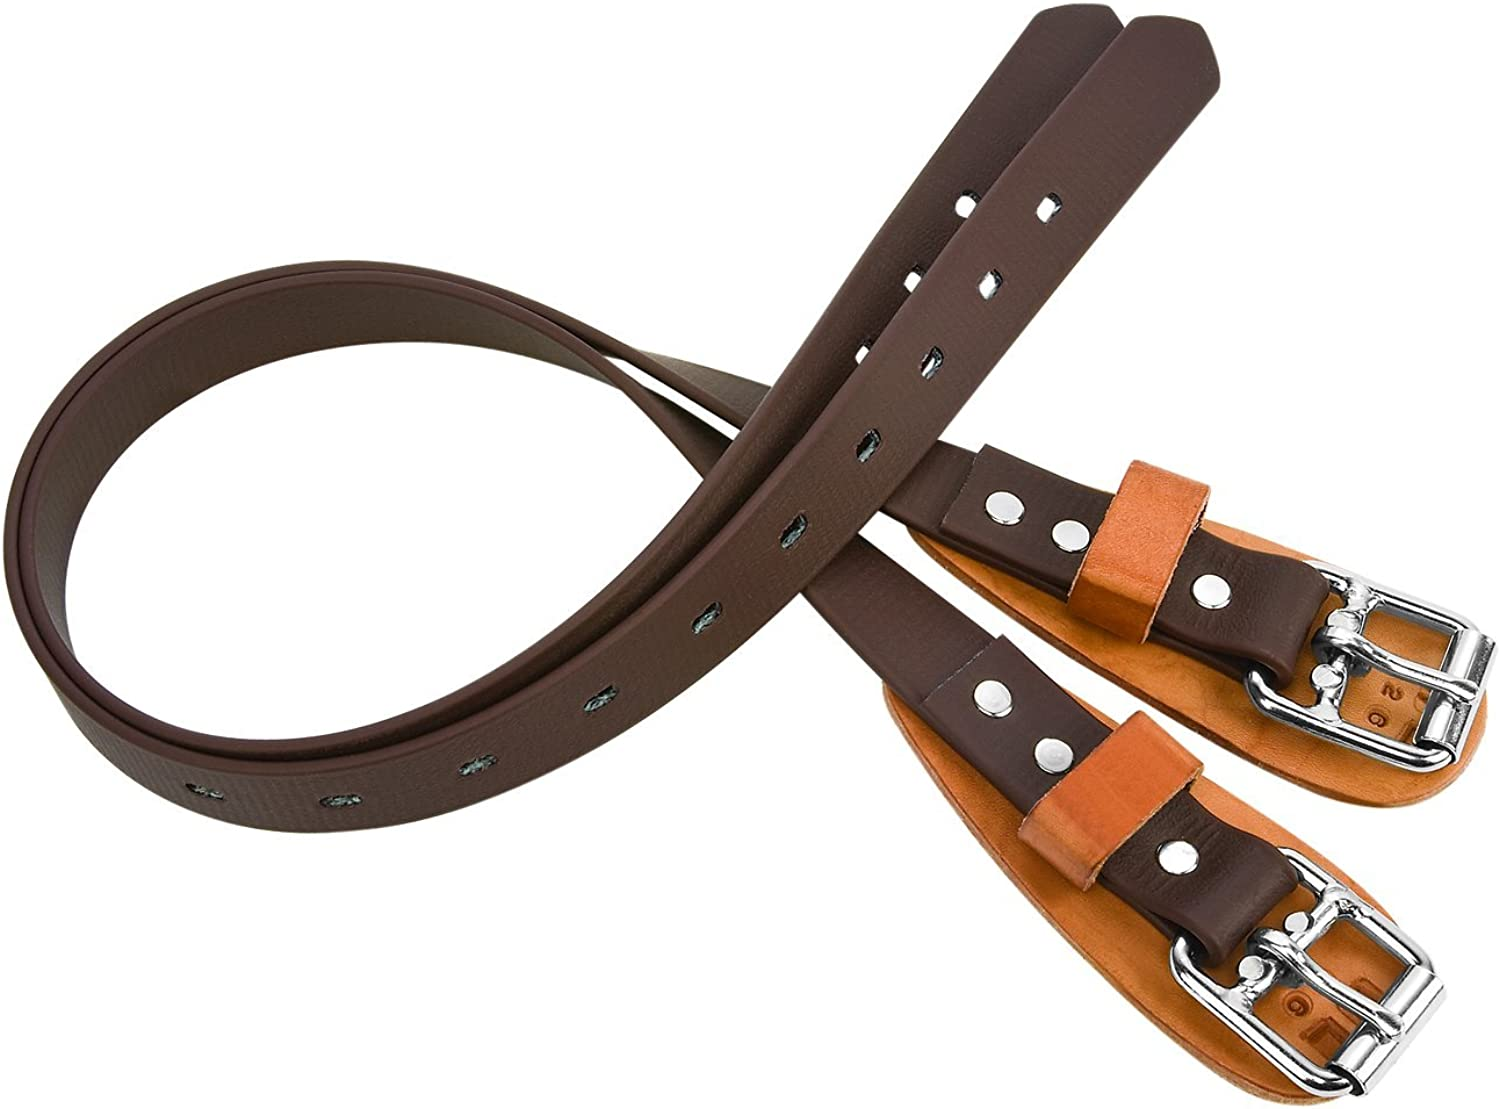 Weaver Leather Upper Climber Straps